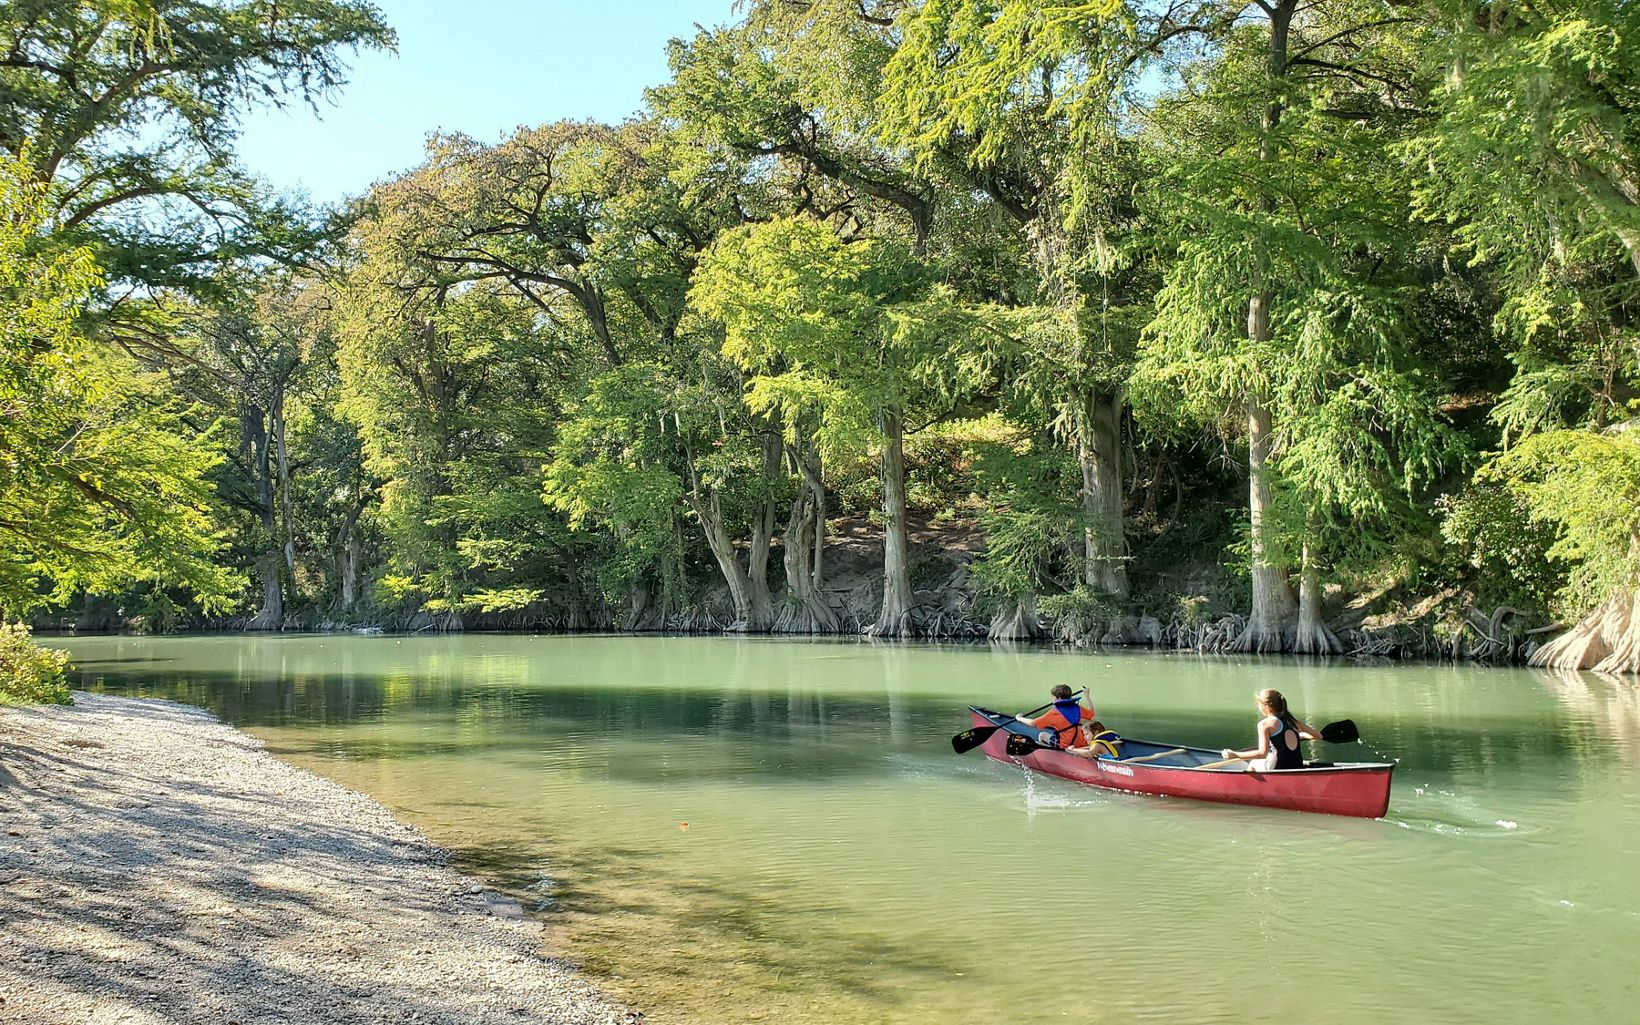 Kids canoeing a lush, green, tree-lined portion of the Guadalupe River in Texas.